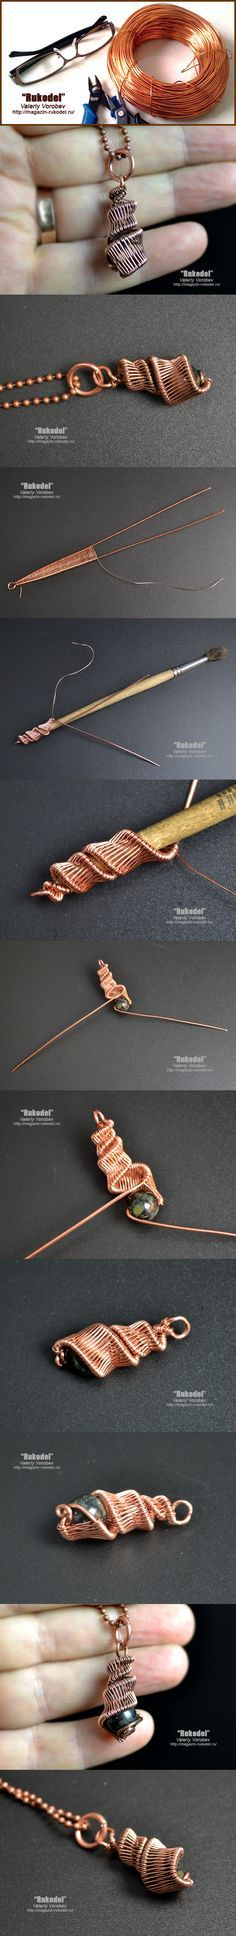 Handmade jewelry from wire. | Crafts                                                                                                                                                                                 More